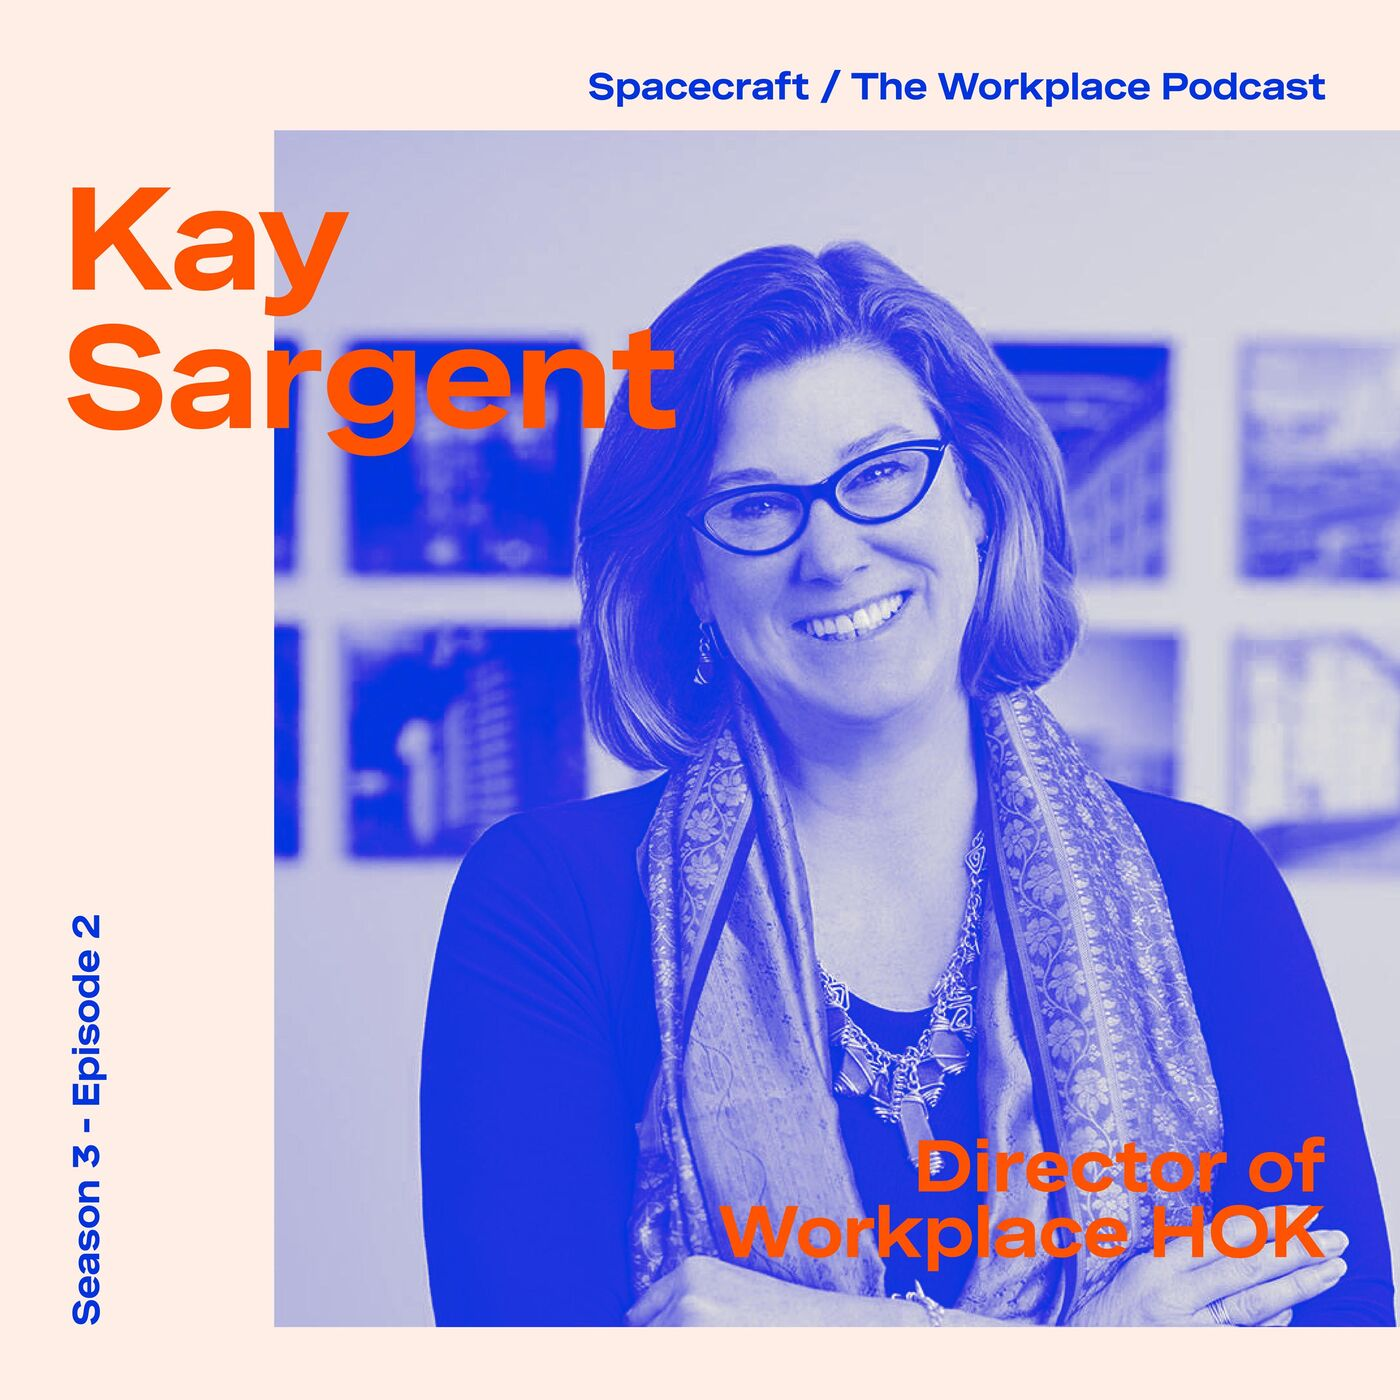 Kay Sargent — Covid is impacting building culture, mentoring, ideating, growing and connecting.